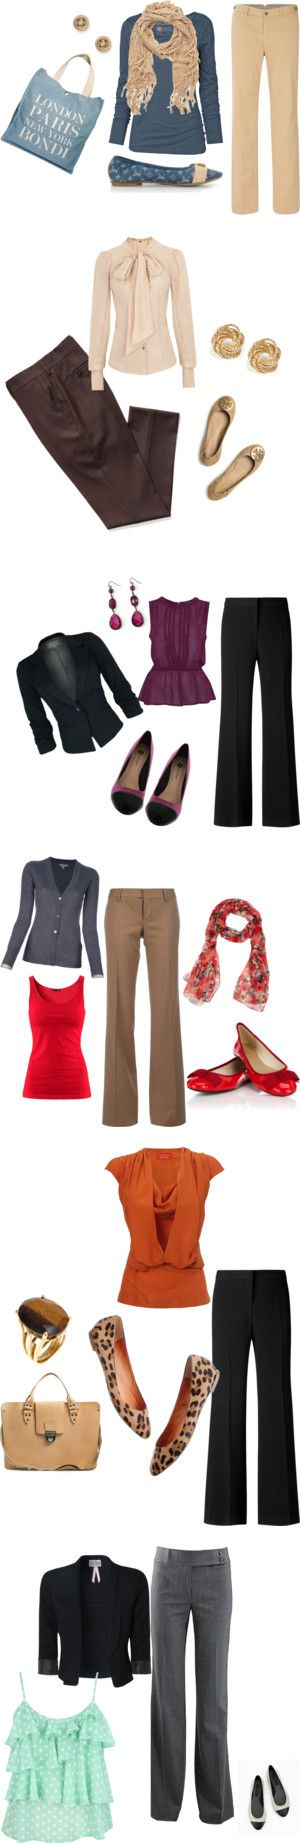 I like all of these! Practical, can wear mix and match for everyday wear & for work Also Pants! So many of these posts are all dresses and skirts which I could never wear in a lab setting